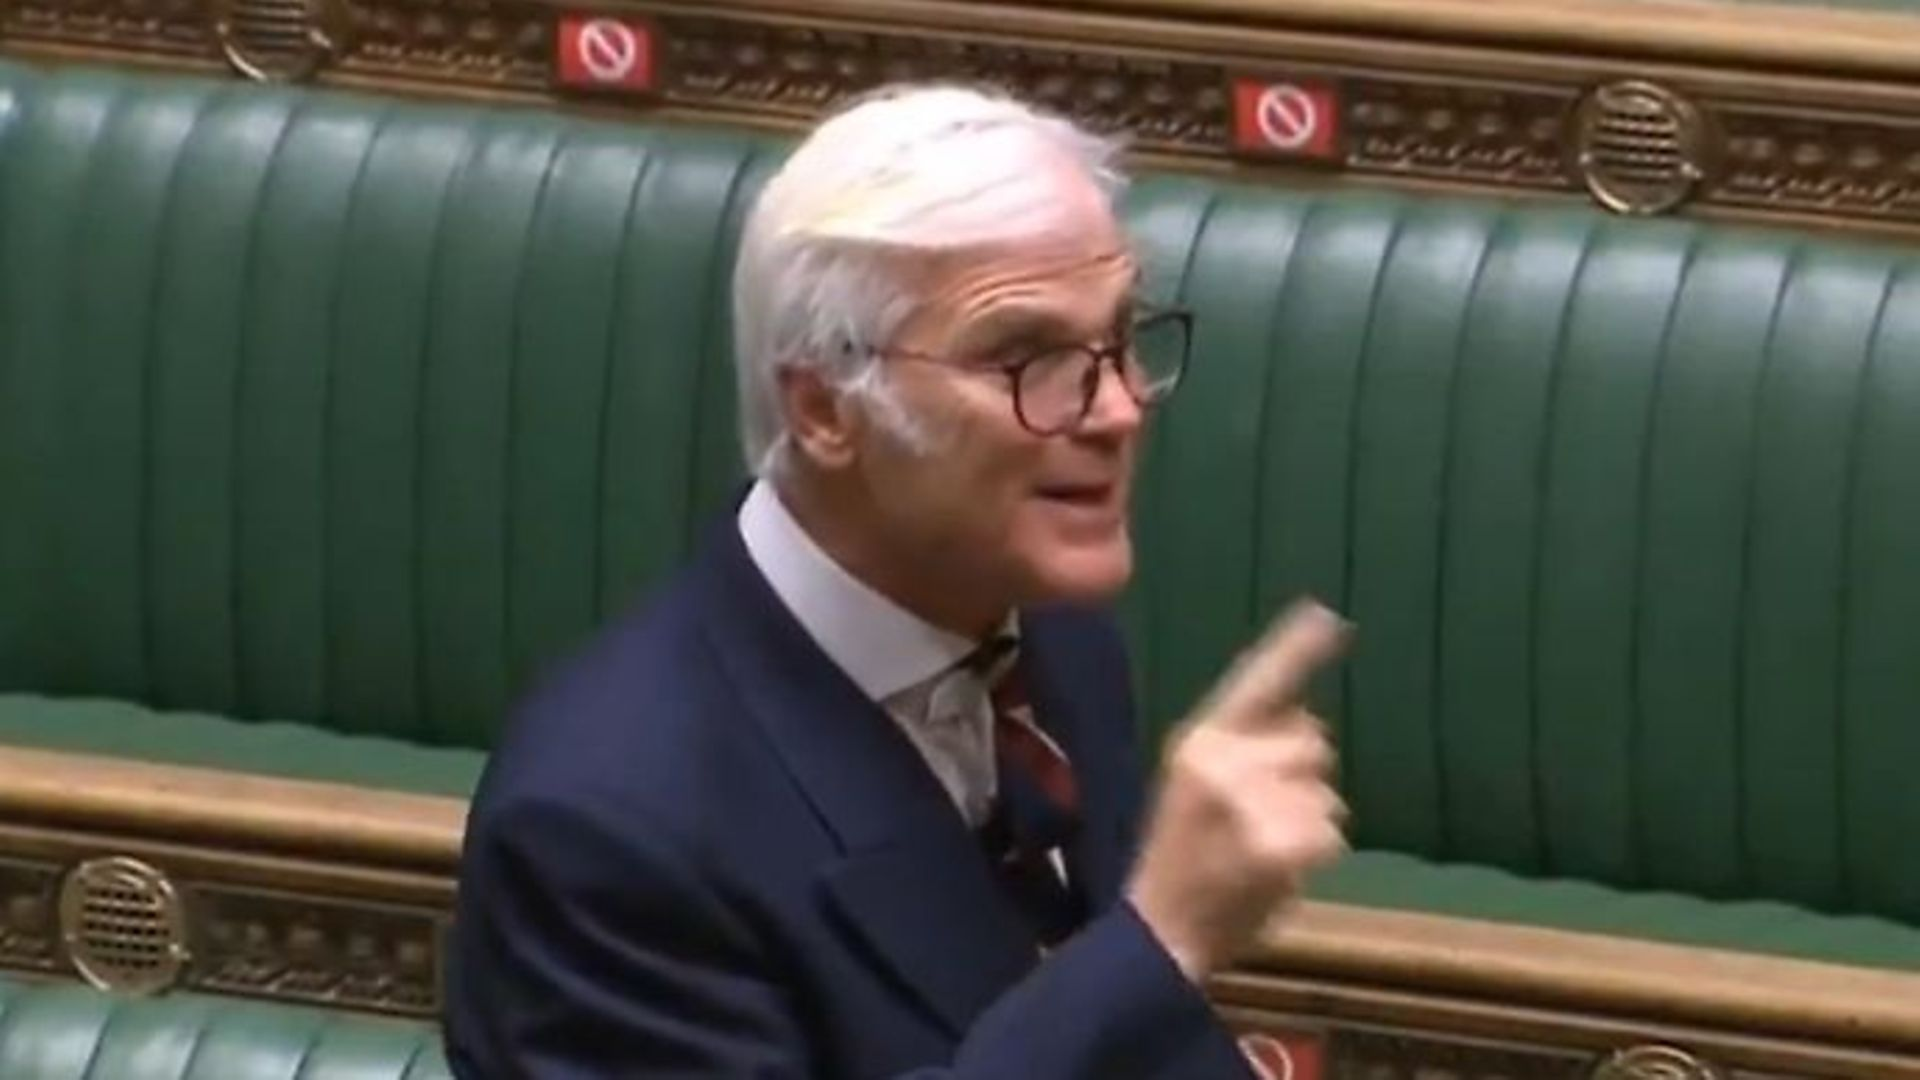 Tory MP Desmond Swayne in the House of Commons - Credit: Twitter